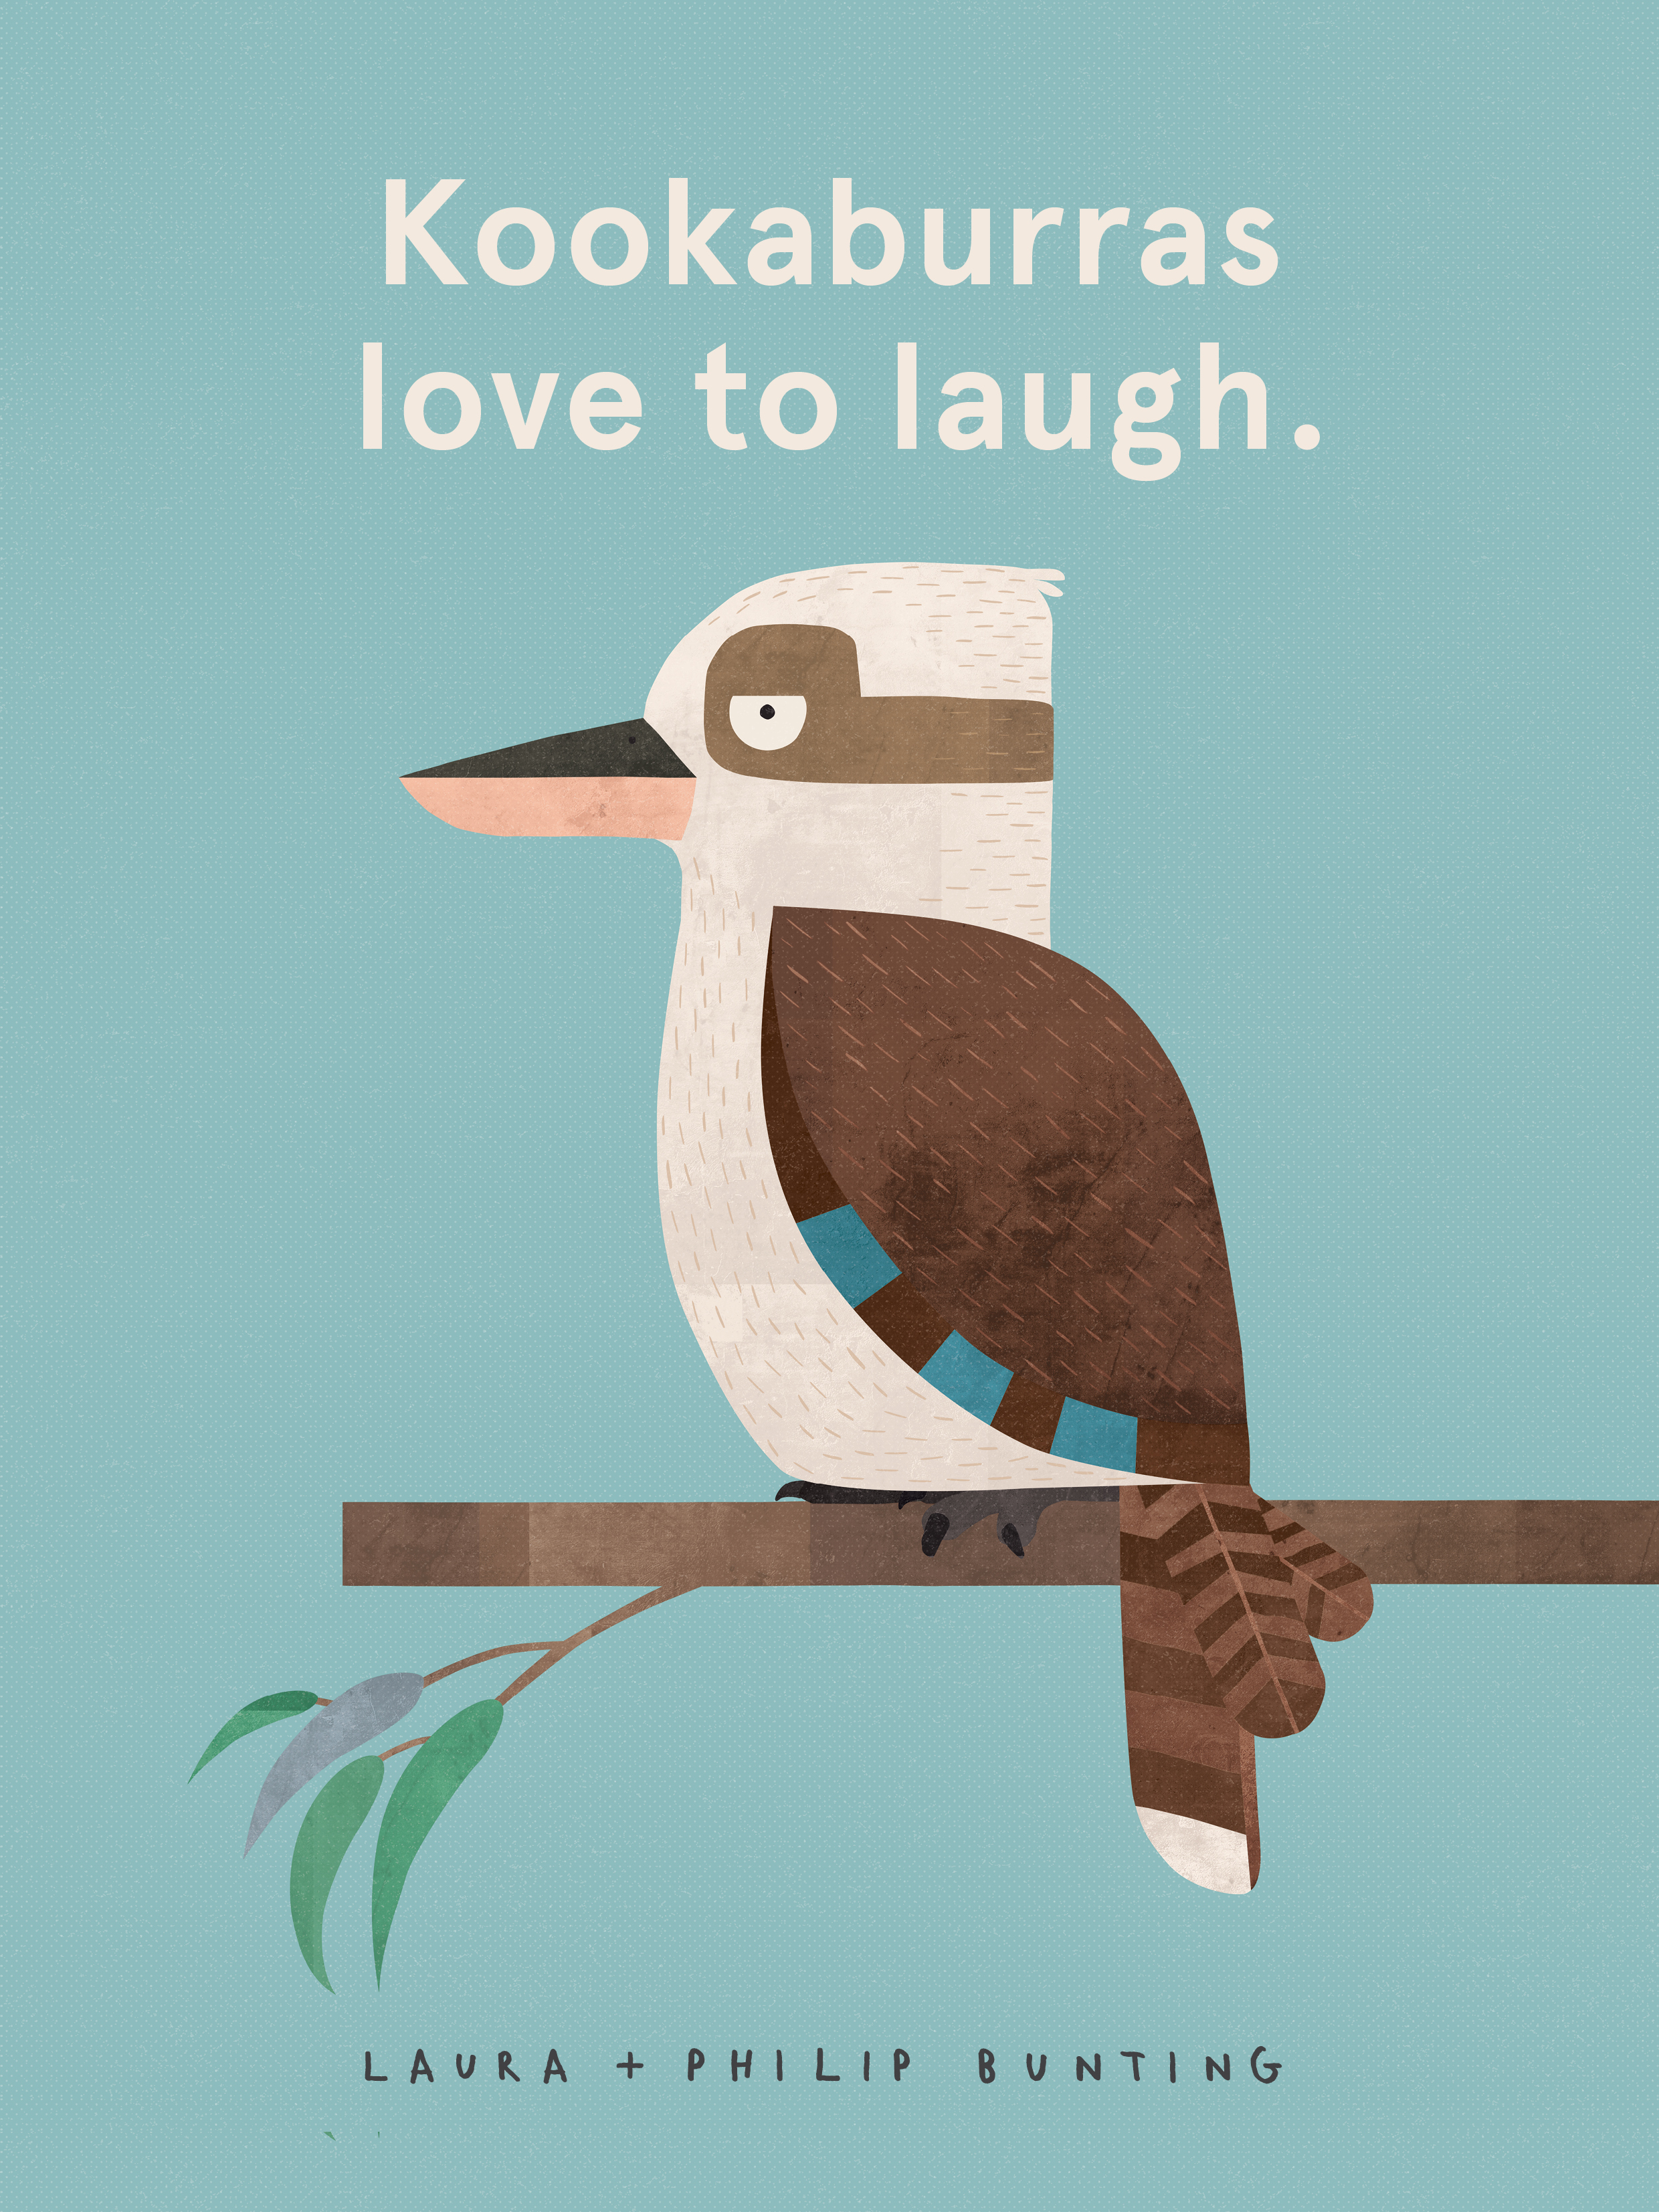 Kookaburras Love to Laugh by Laura Bunting & Philip Bunting